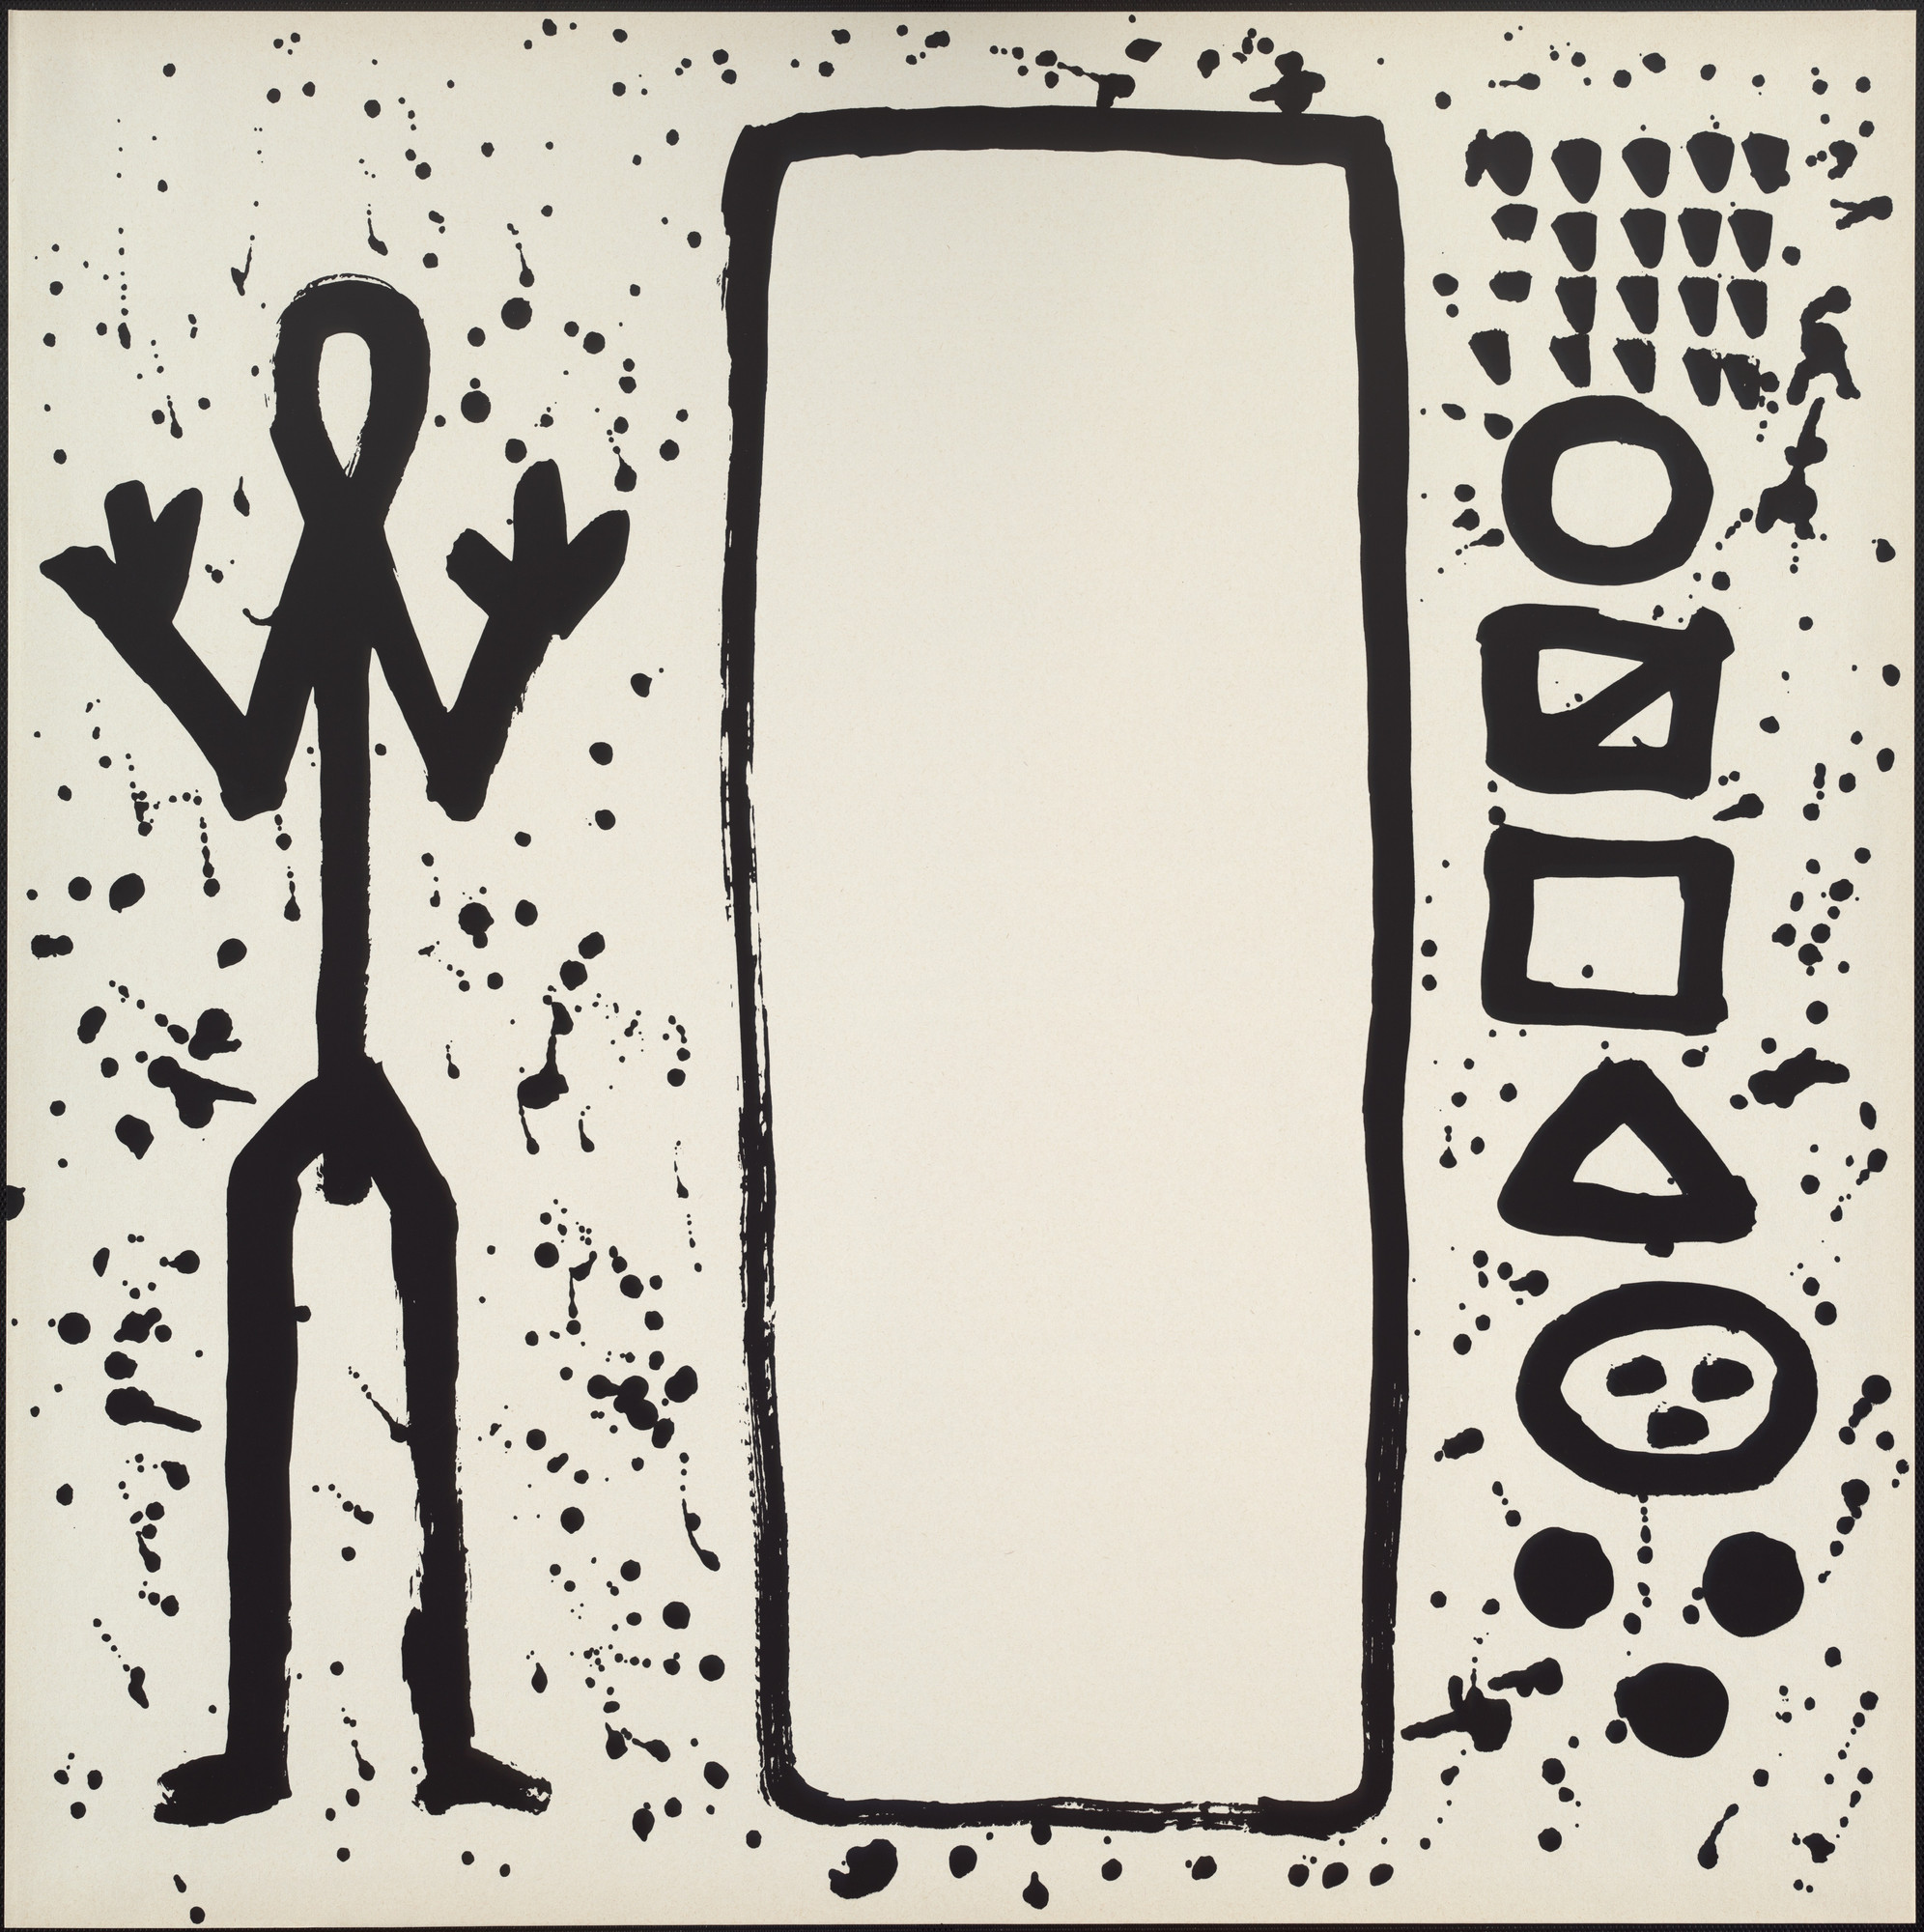 A.R. Penck (Ralf Winkler). Untitled from the portfolio Ur End Standart. 1972